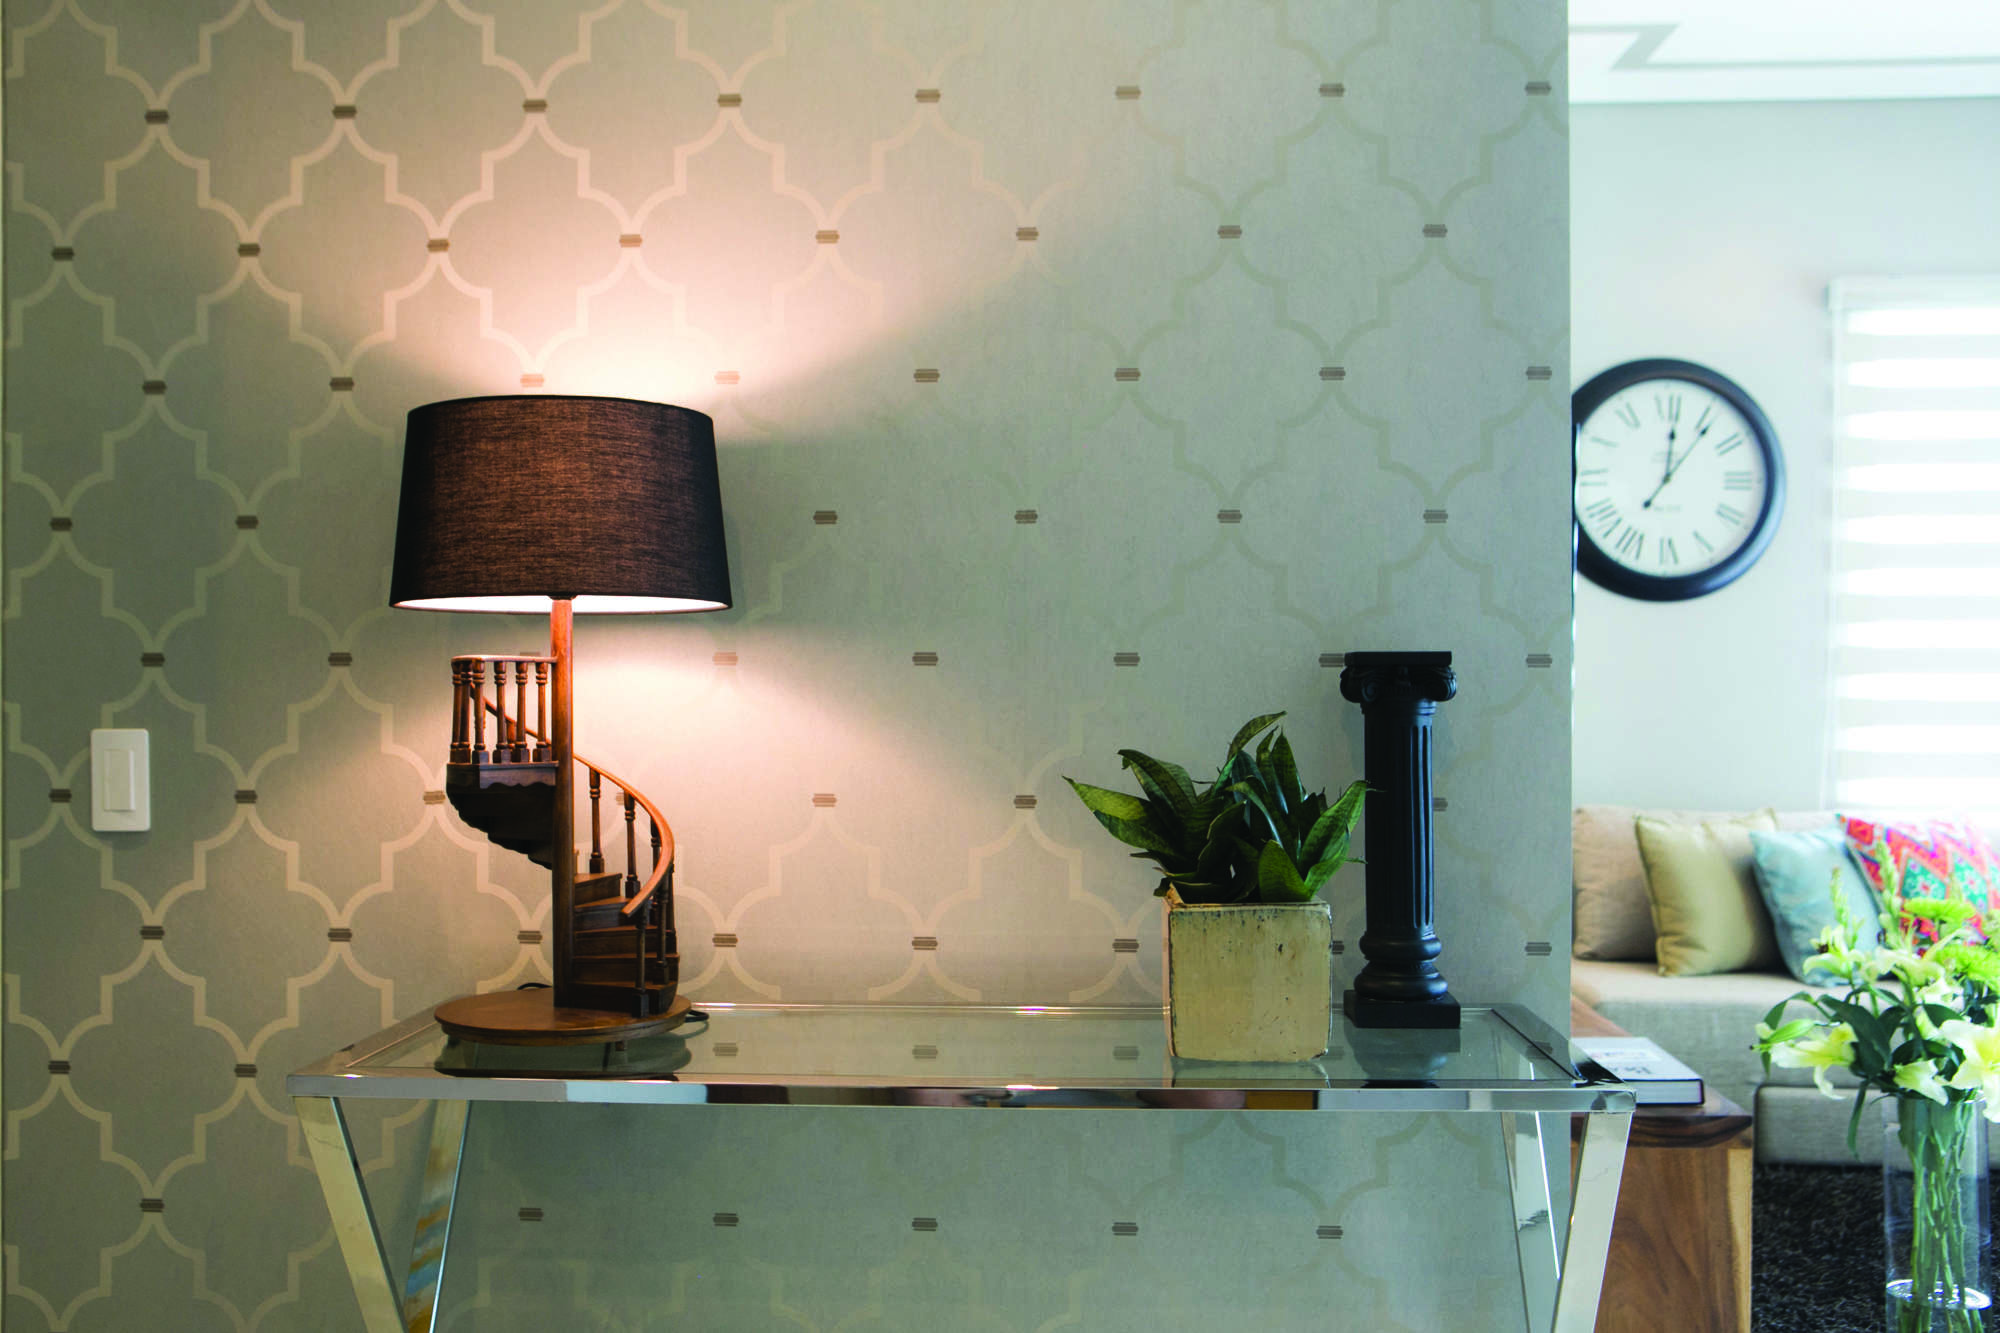 Dual Heads Floor Standing Lamp With Shade Adjustable MS-62084 For Living Ro